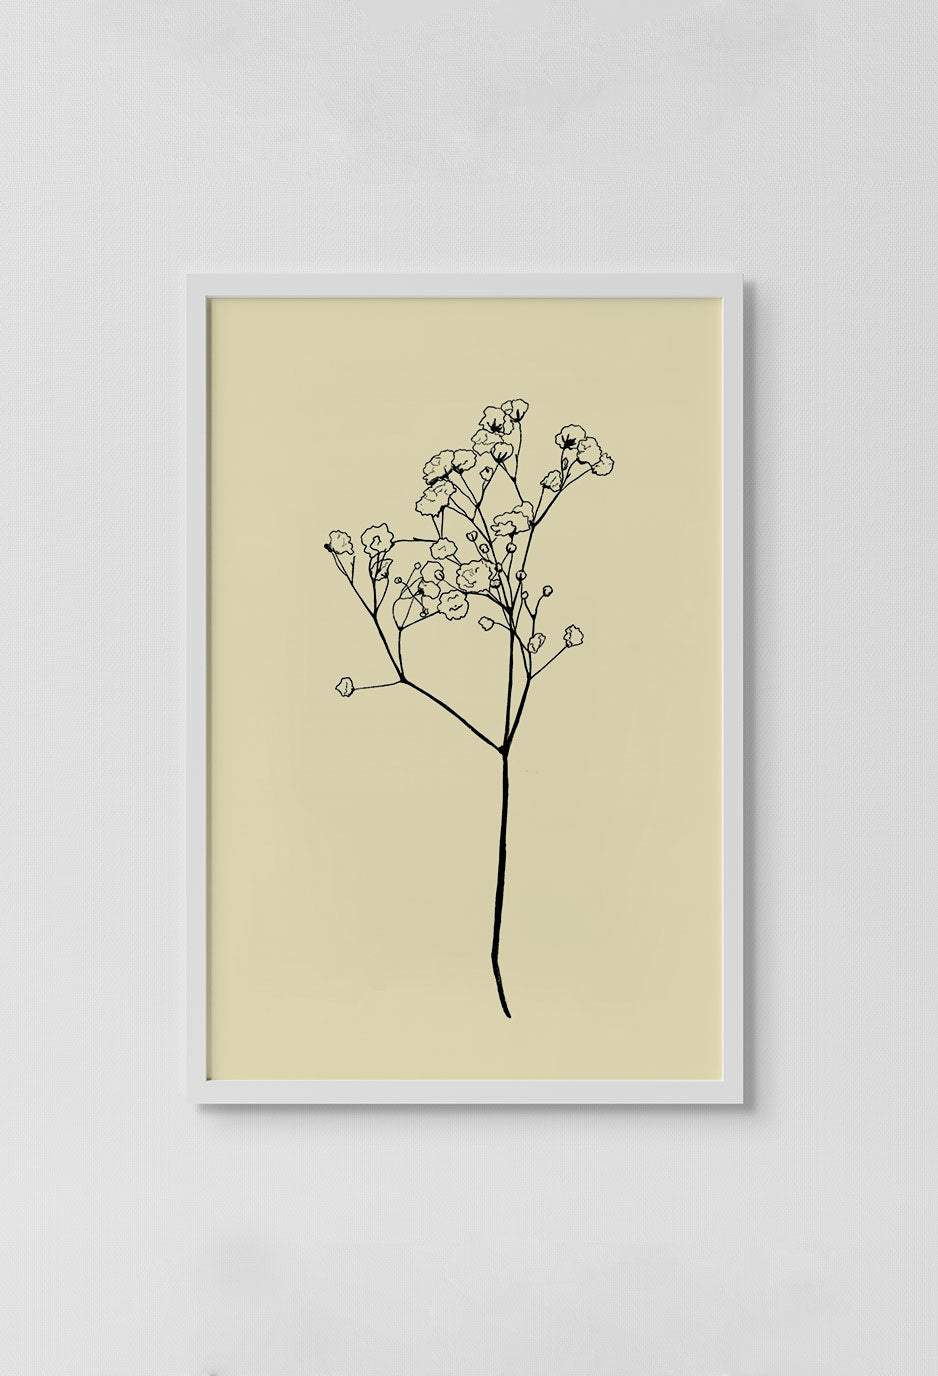 image of black tree stencil drawing with beige background in white frame on white wall.